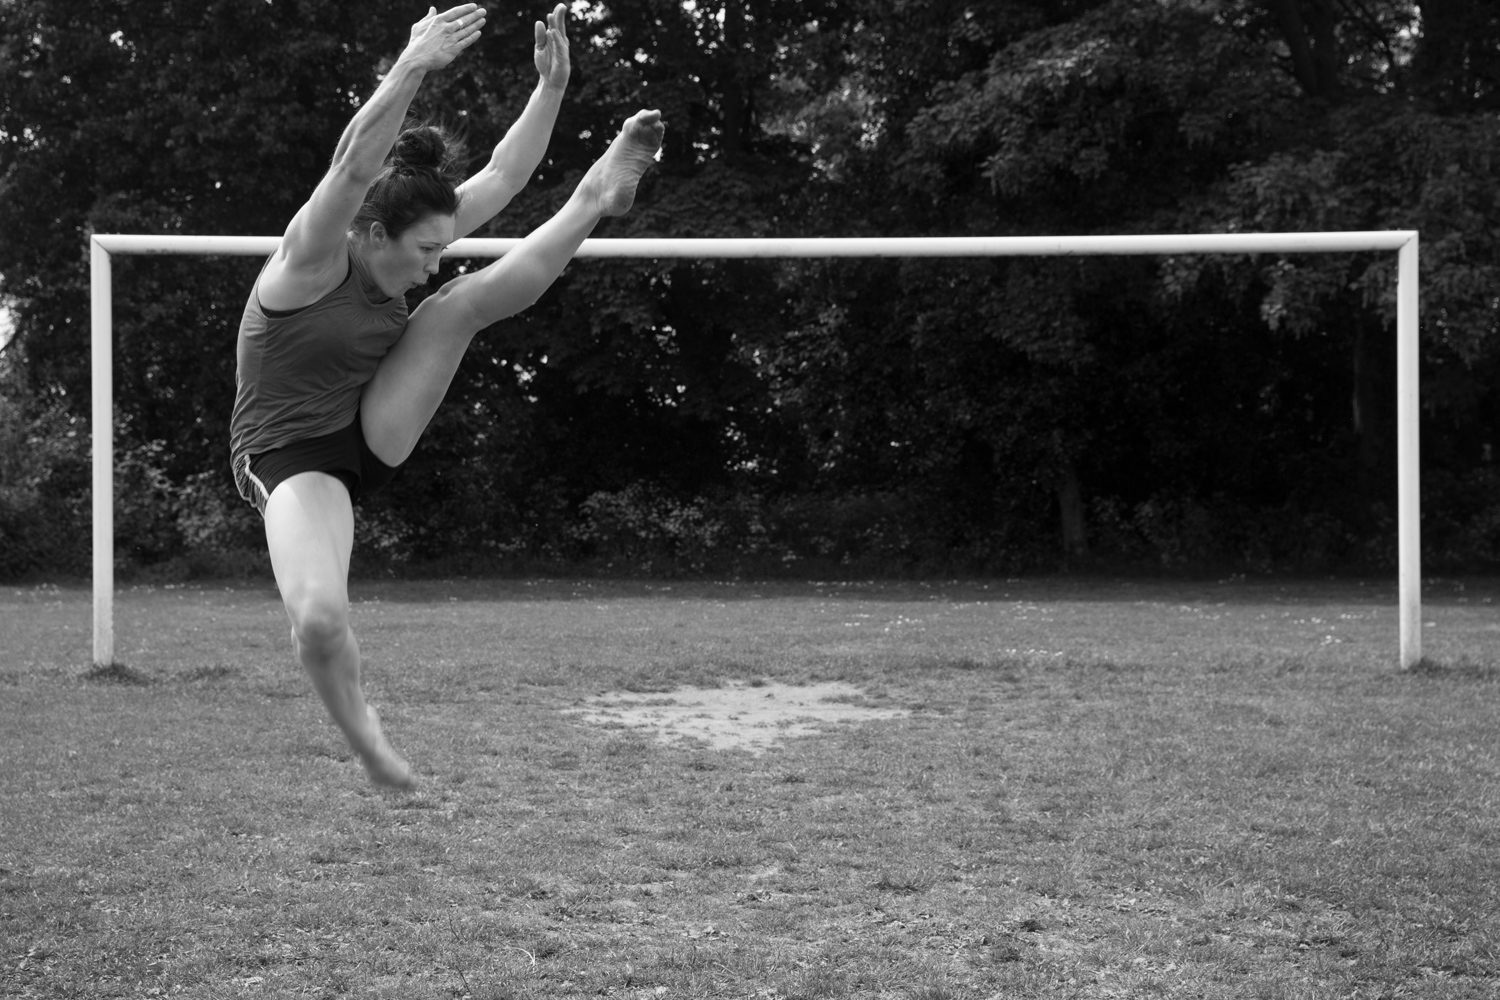 Dance Contemporary dance park sports ground goal posts b&w black and white